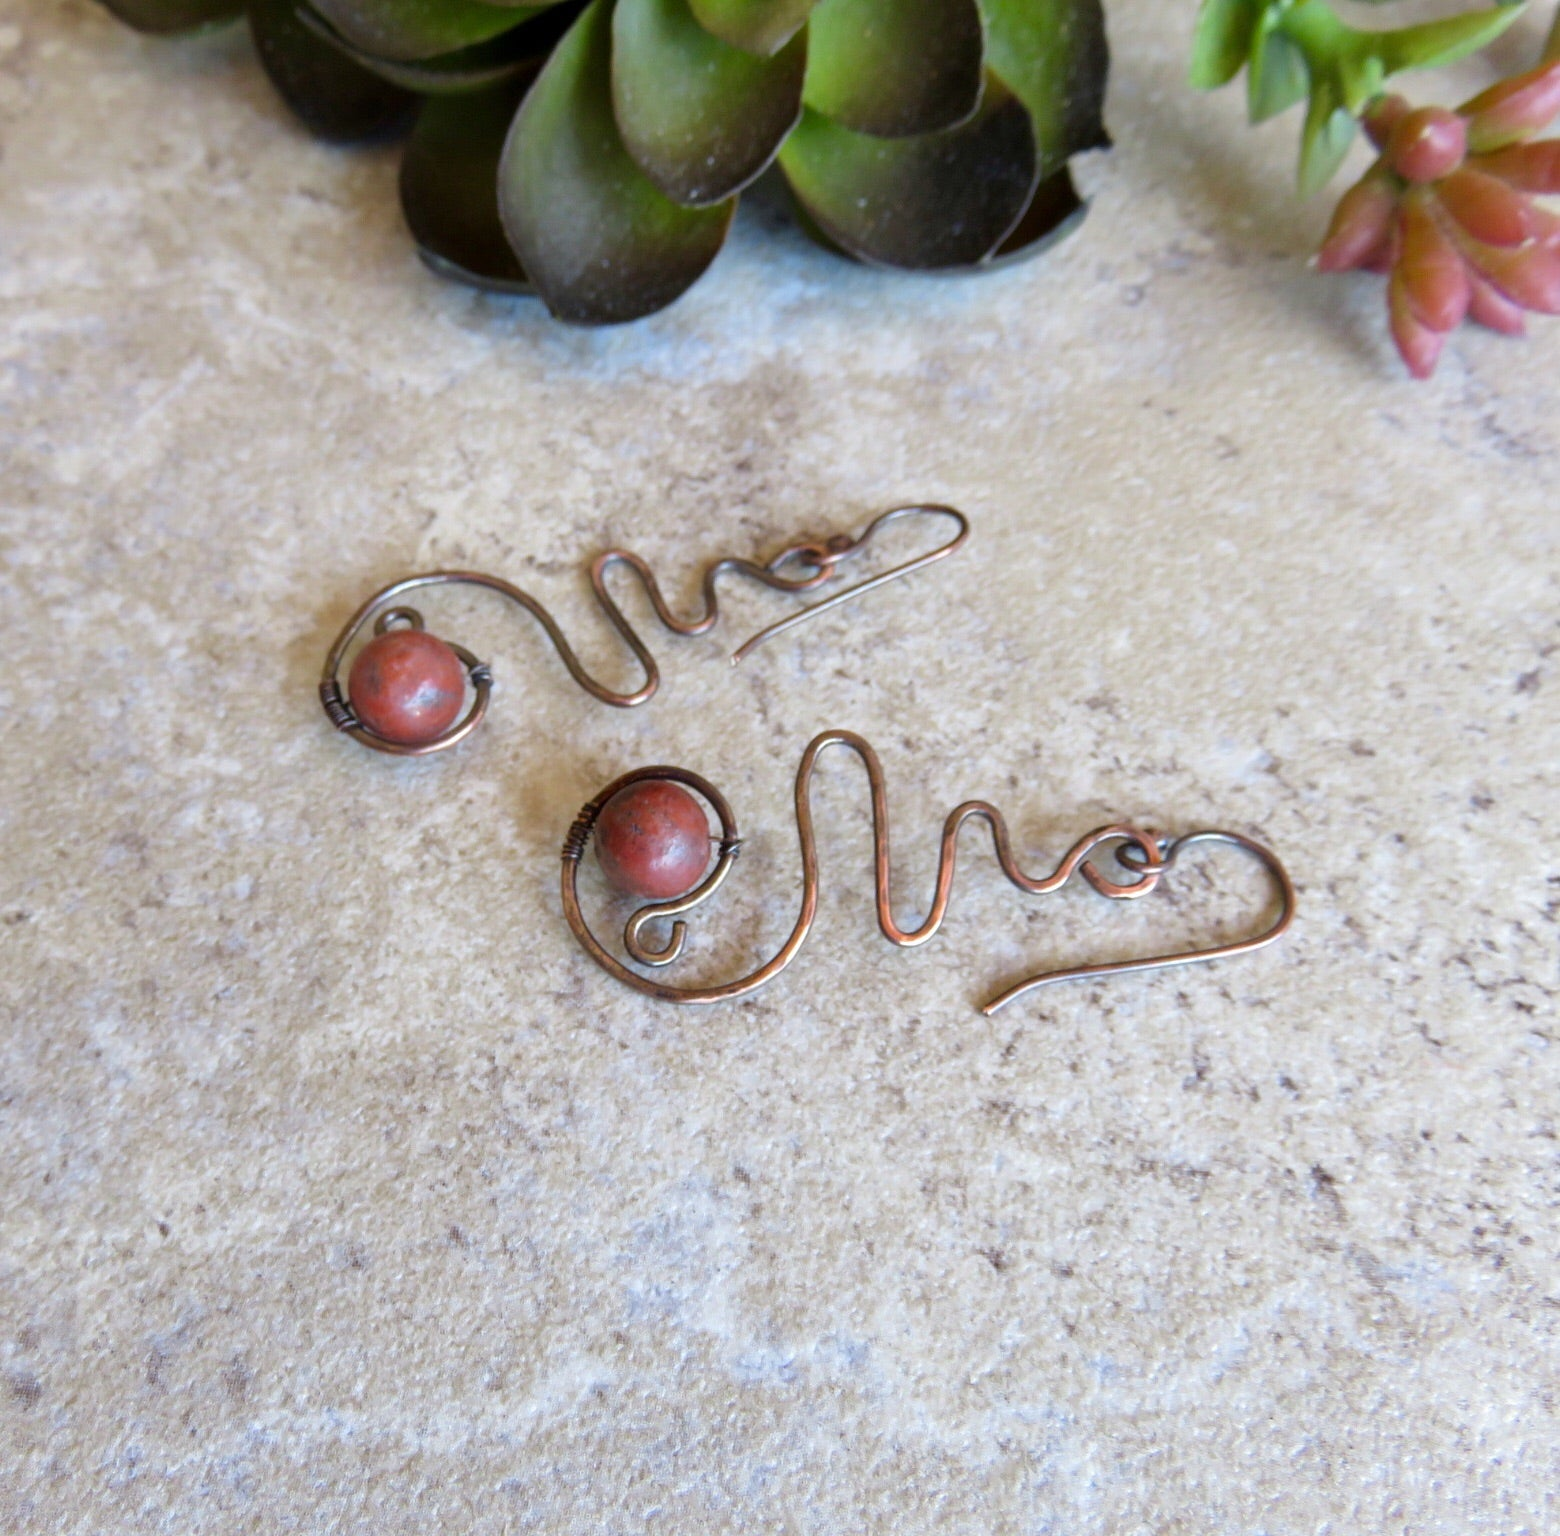 Copper Earrings, Copper Dangle Earrings, Hammered Copper Earrings - Desert Shine Designs